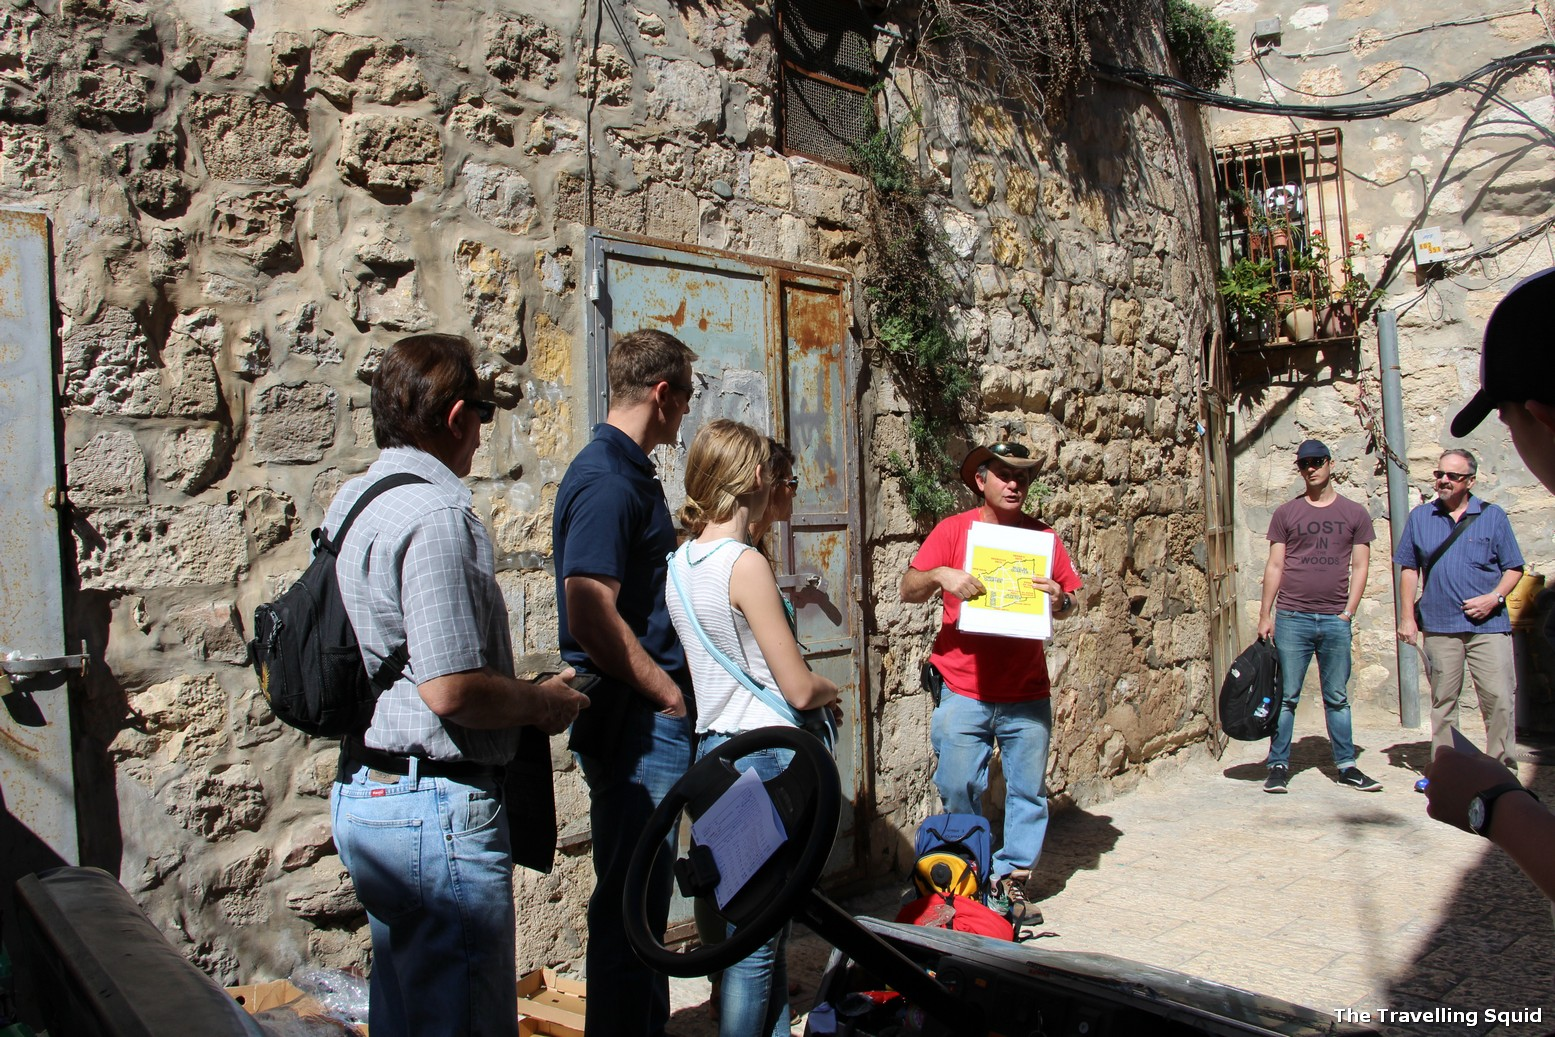 Sandemans tour of the Jerusalem Old City